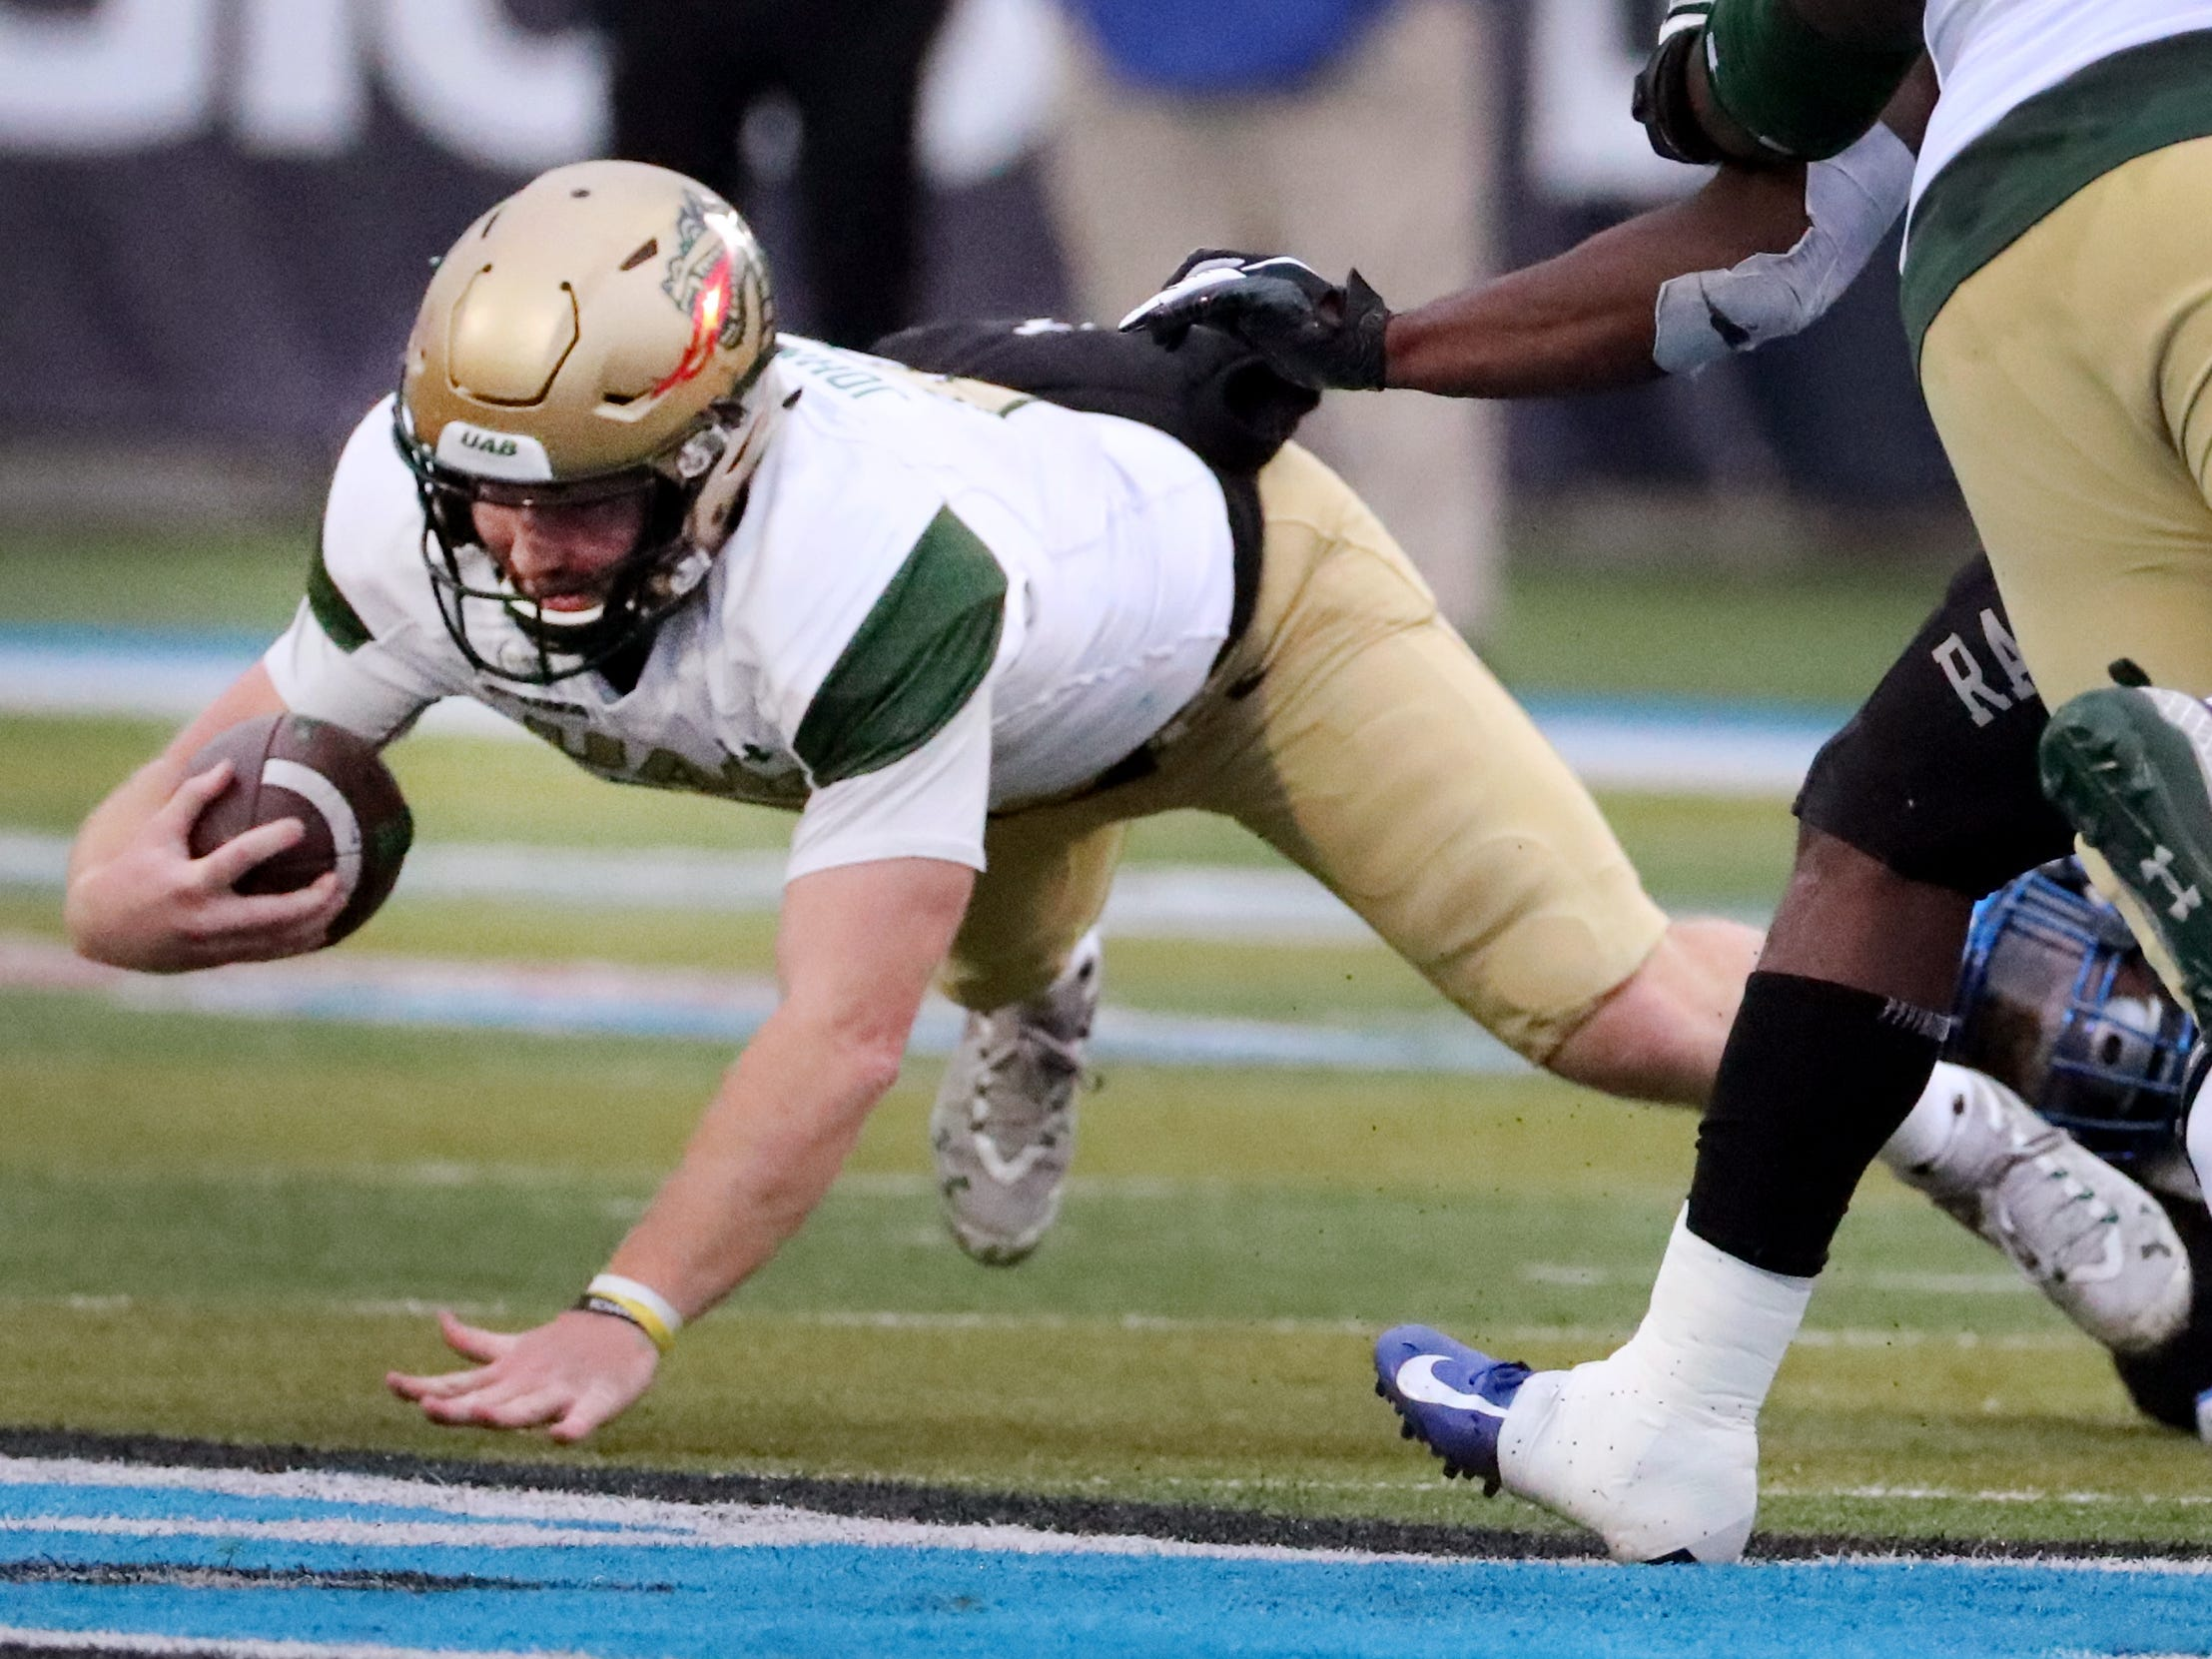 UAB's quarterback Tyler Johnston III (17)  falls as he runs with the ball during the Conference USA Championship against MTSU at MTSU on Saturday, Dec. 1, 2018.